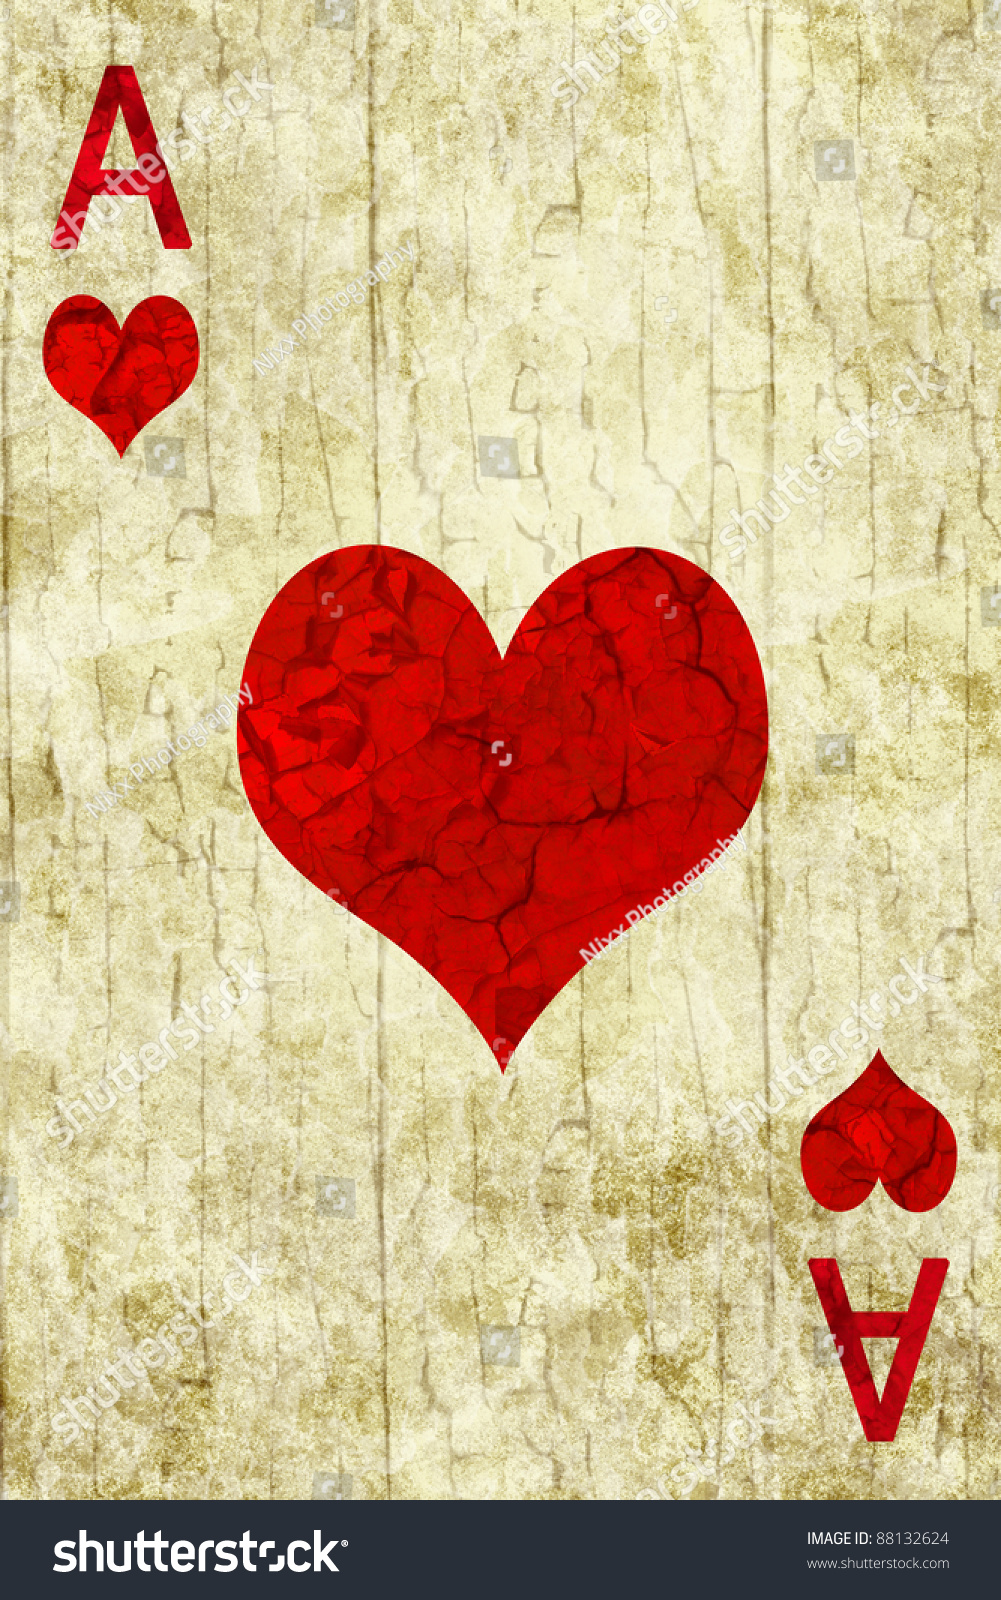 old ace of hearts playing card stock photo 88132624